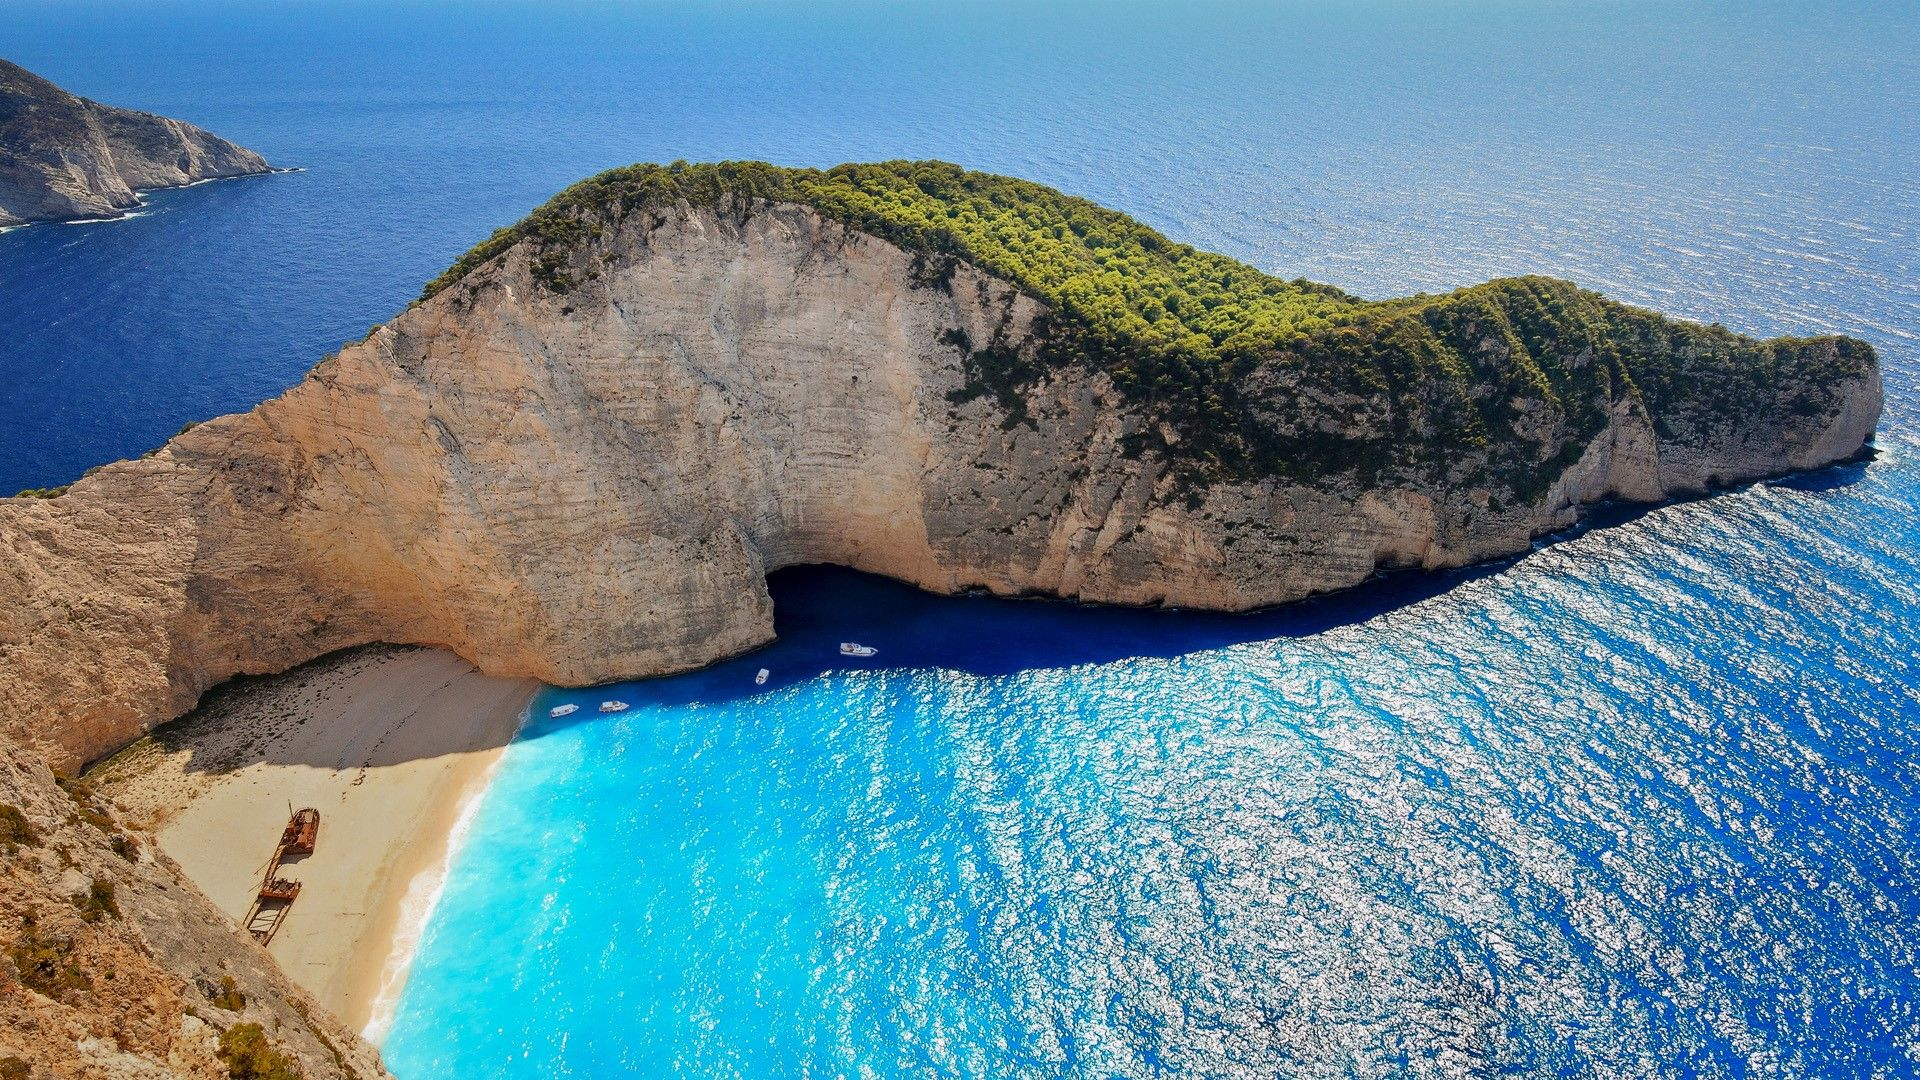 Windows 10 Wallpaper Beach Summer Beach Wallpaper Zakynthos